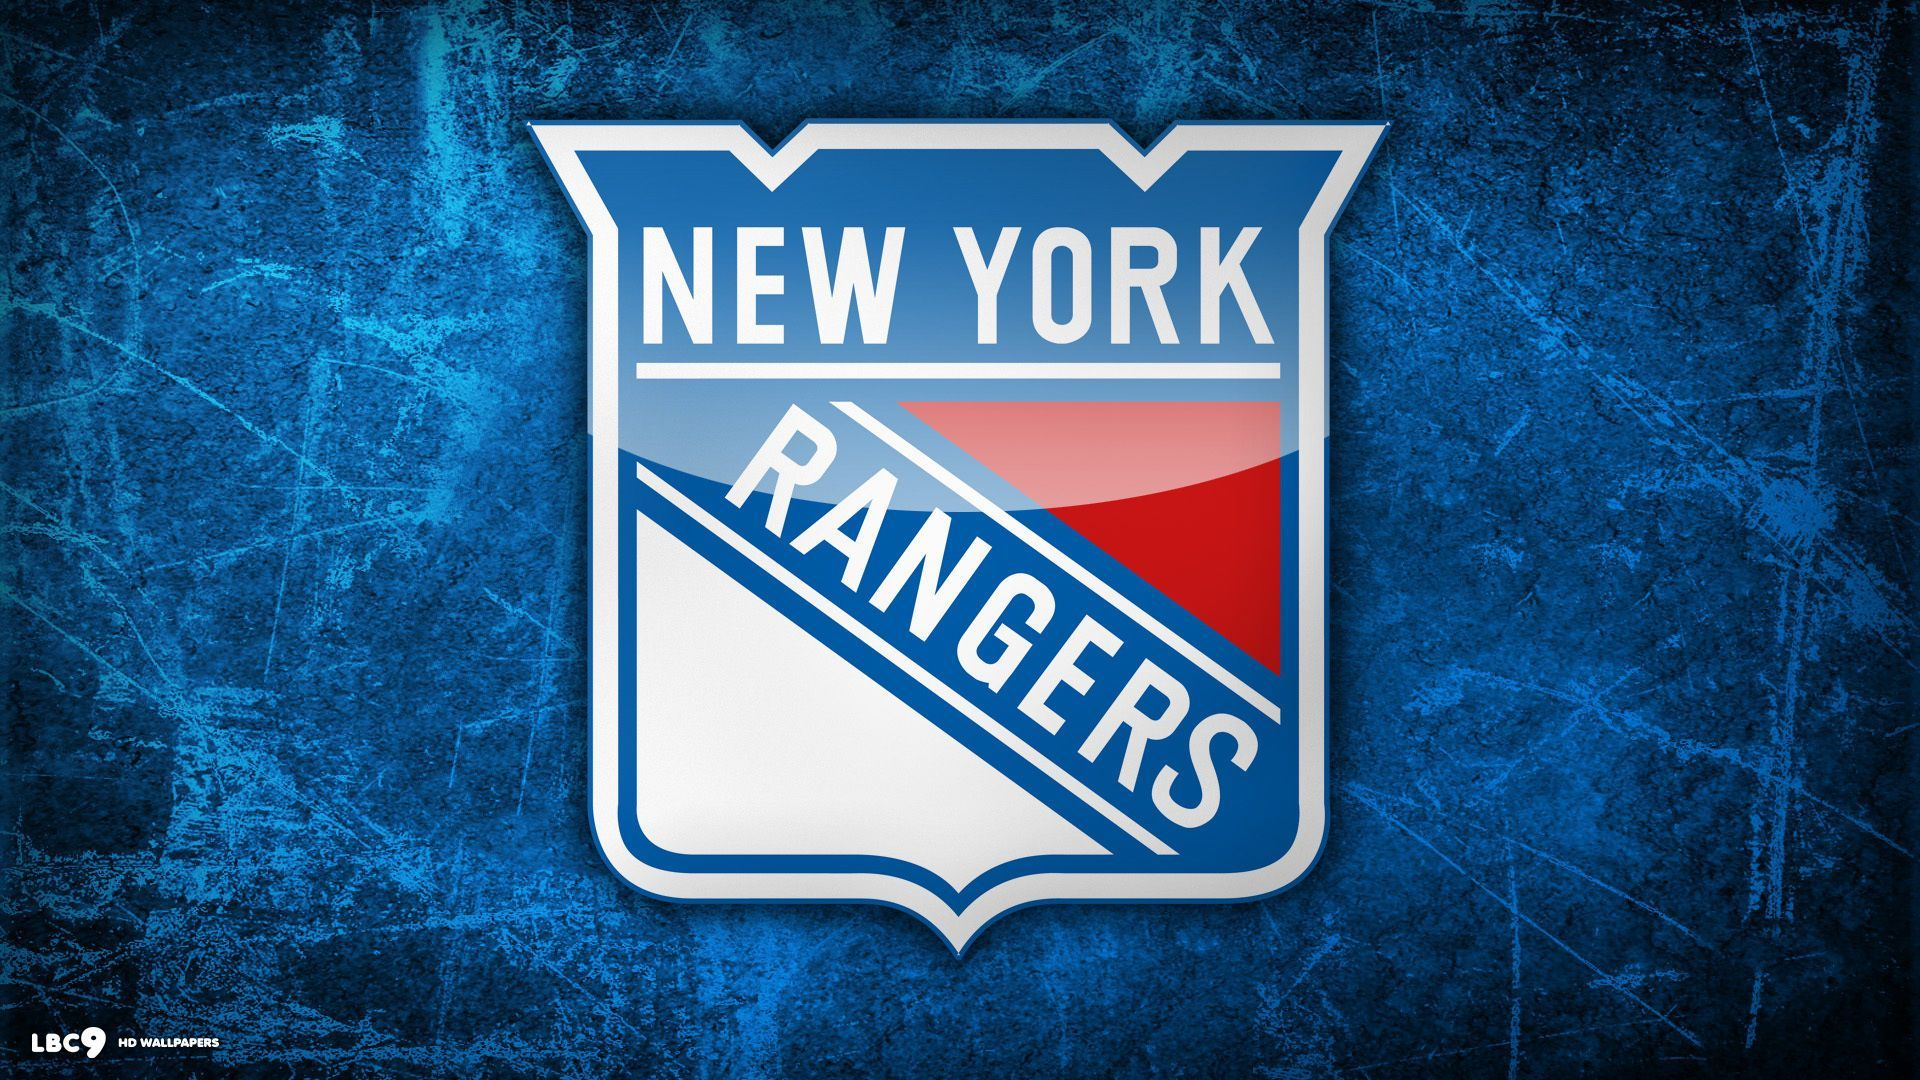 New York Ranger Wallpaper